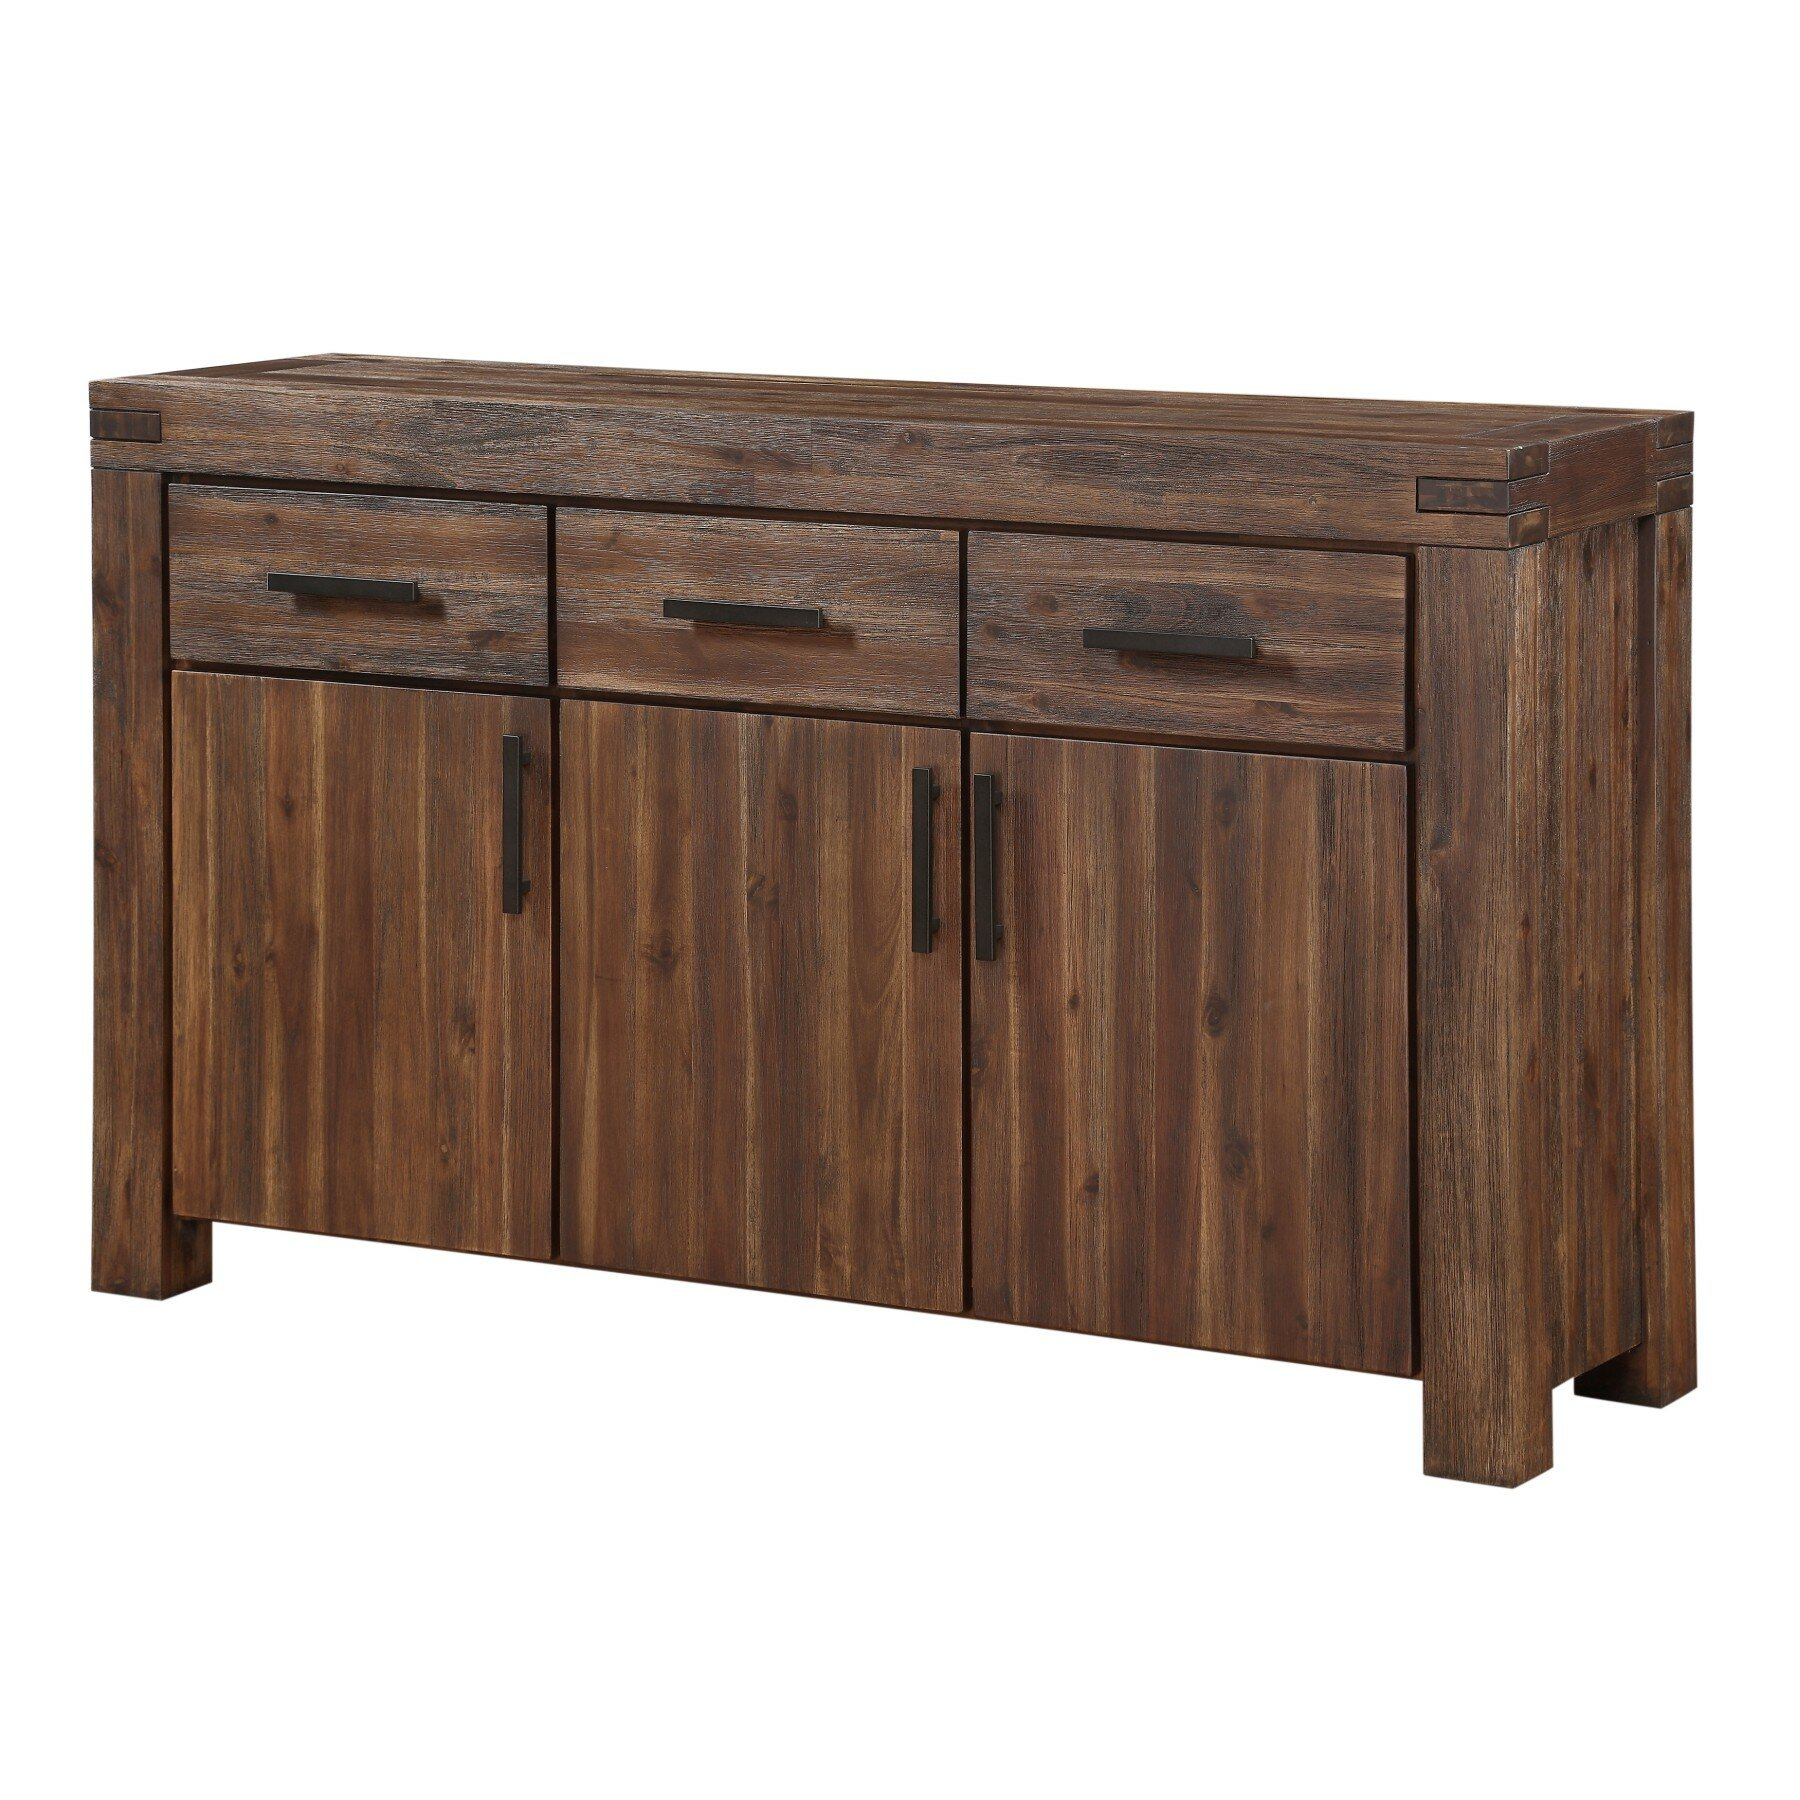 Kitchen Buffet Furniture: Loon Peak Gibson Sideboard & Reviews